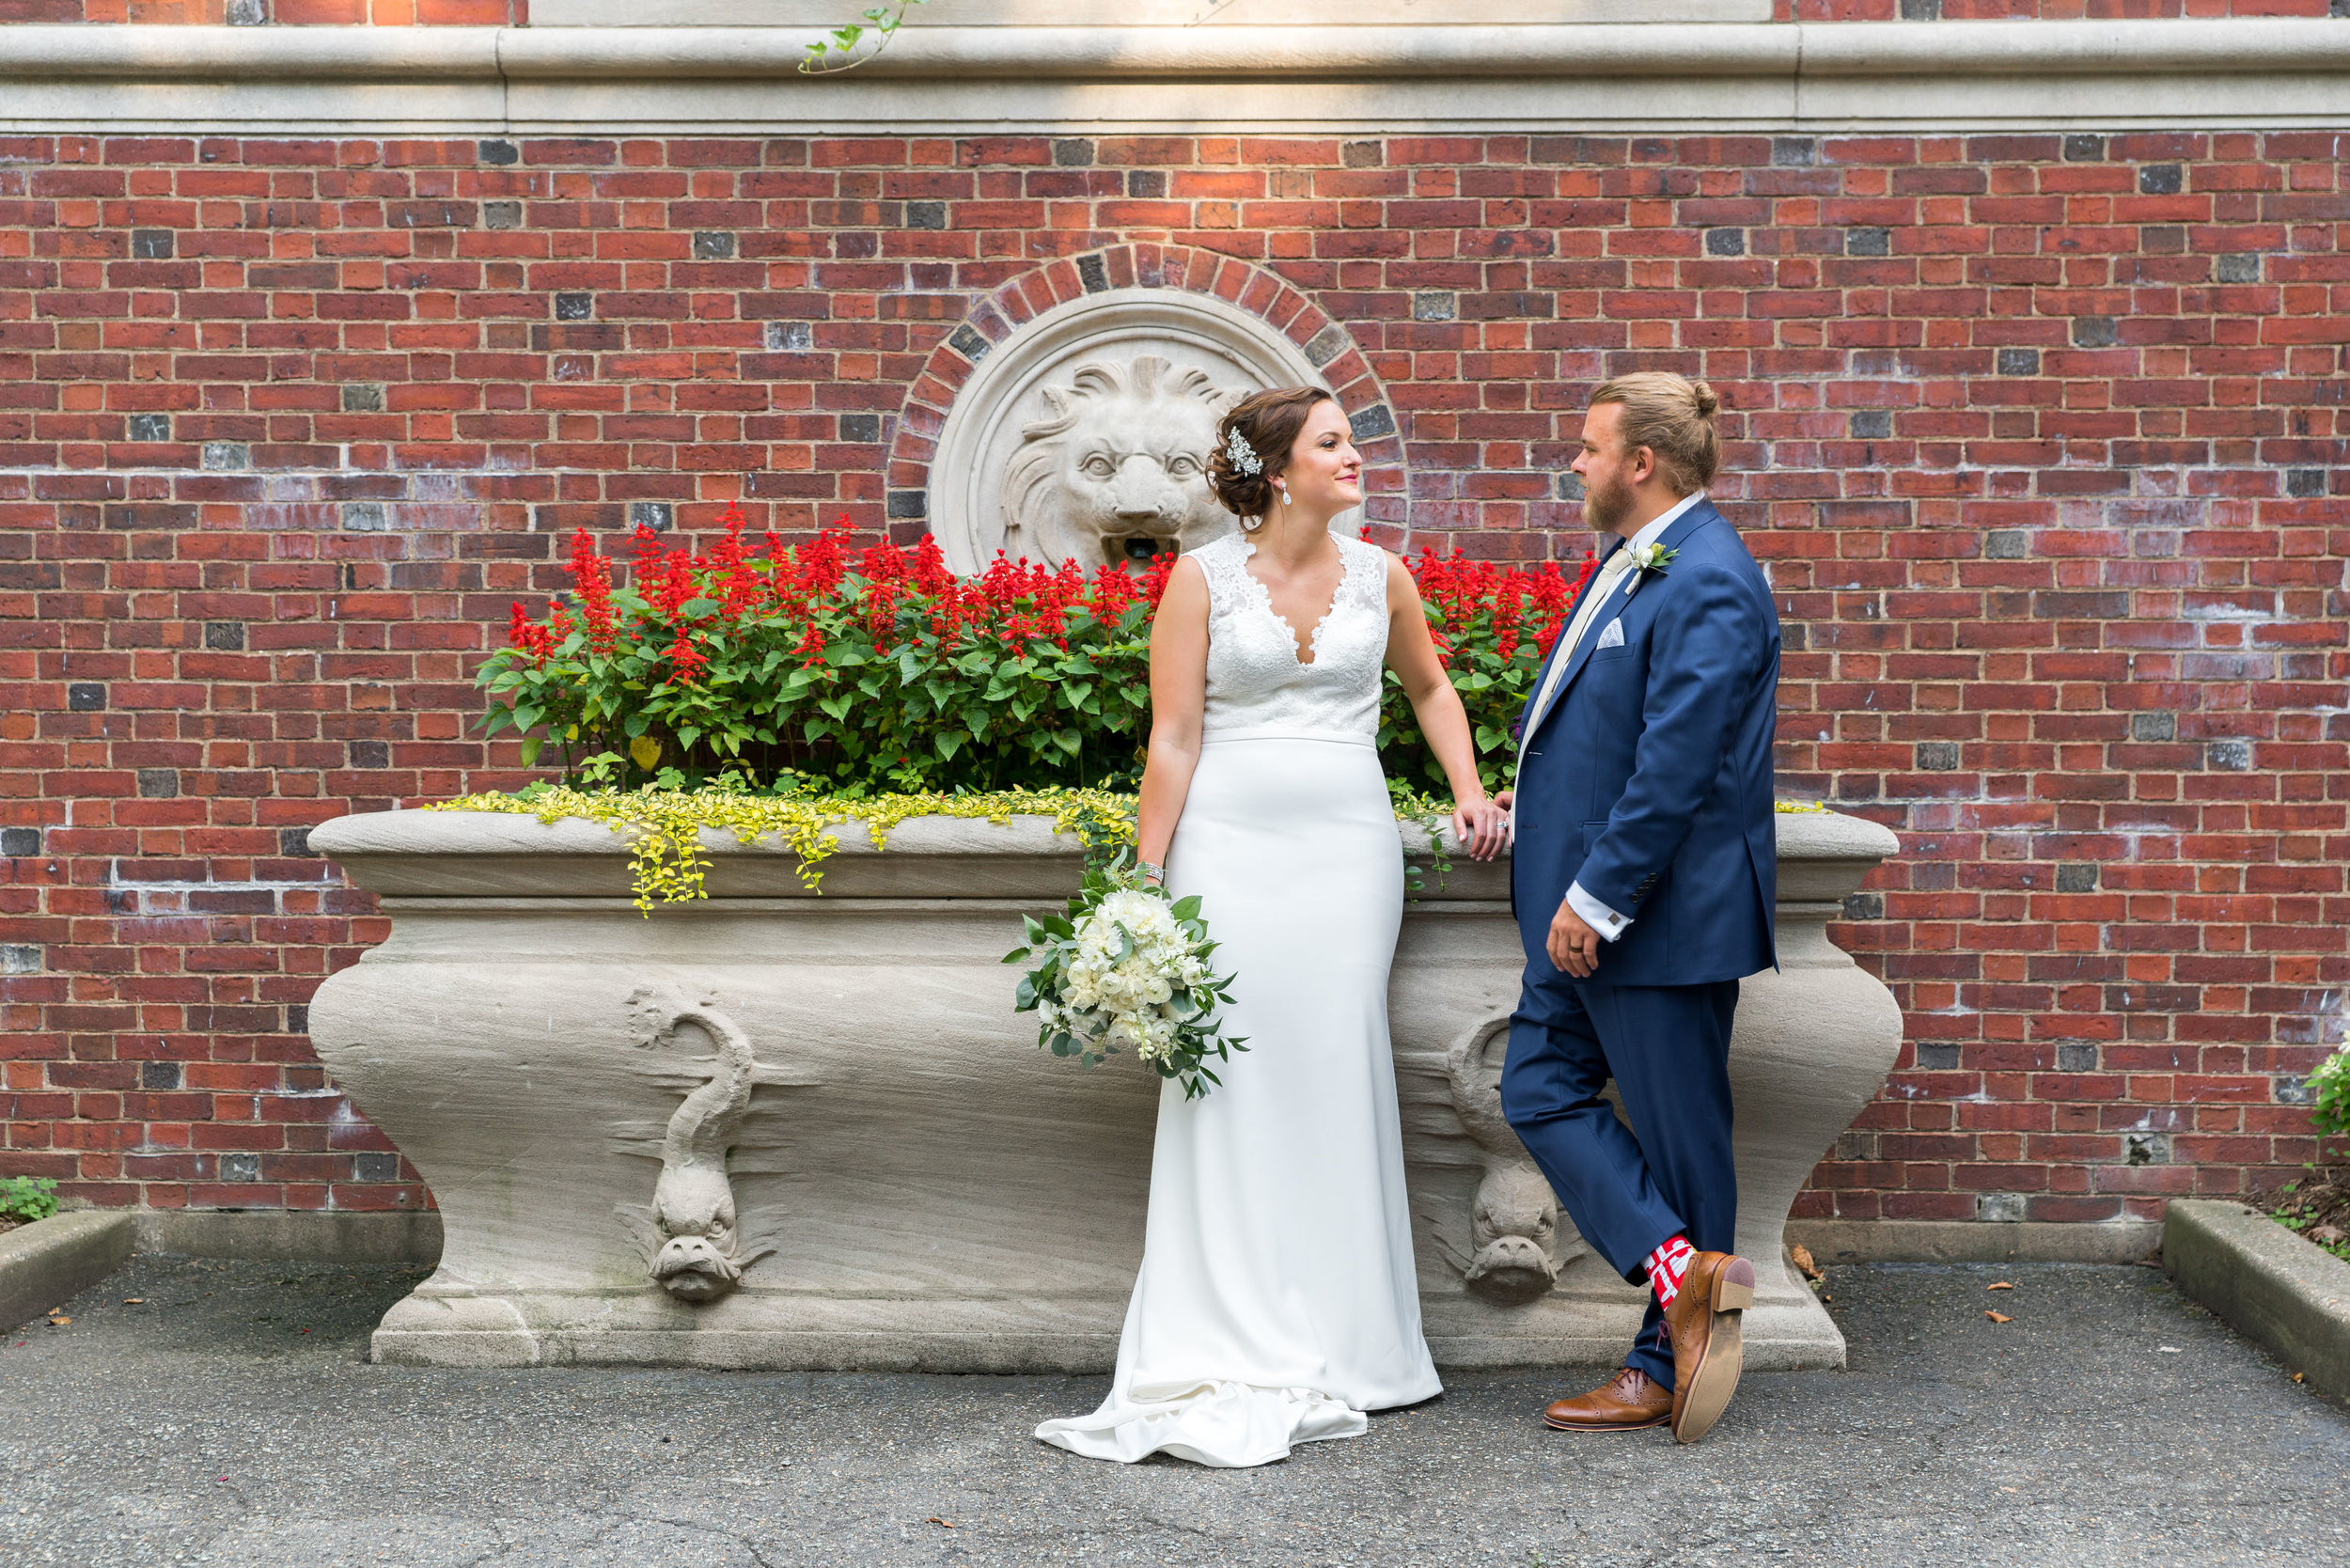 Wedding ortraits by a brick wall next to meridian house